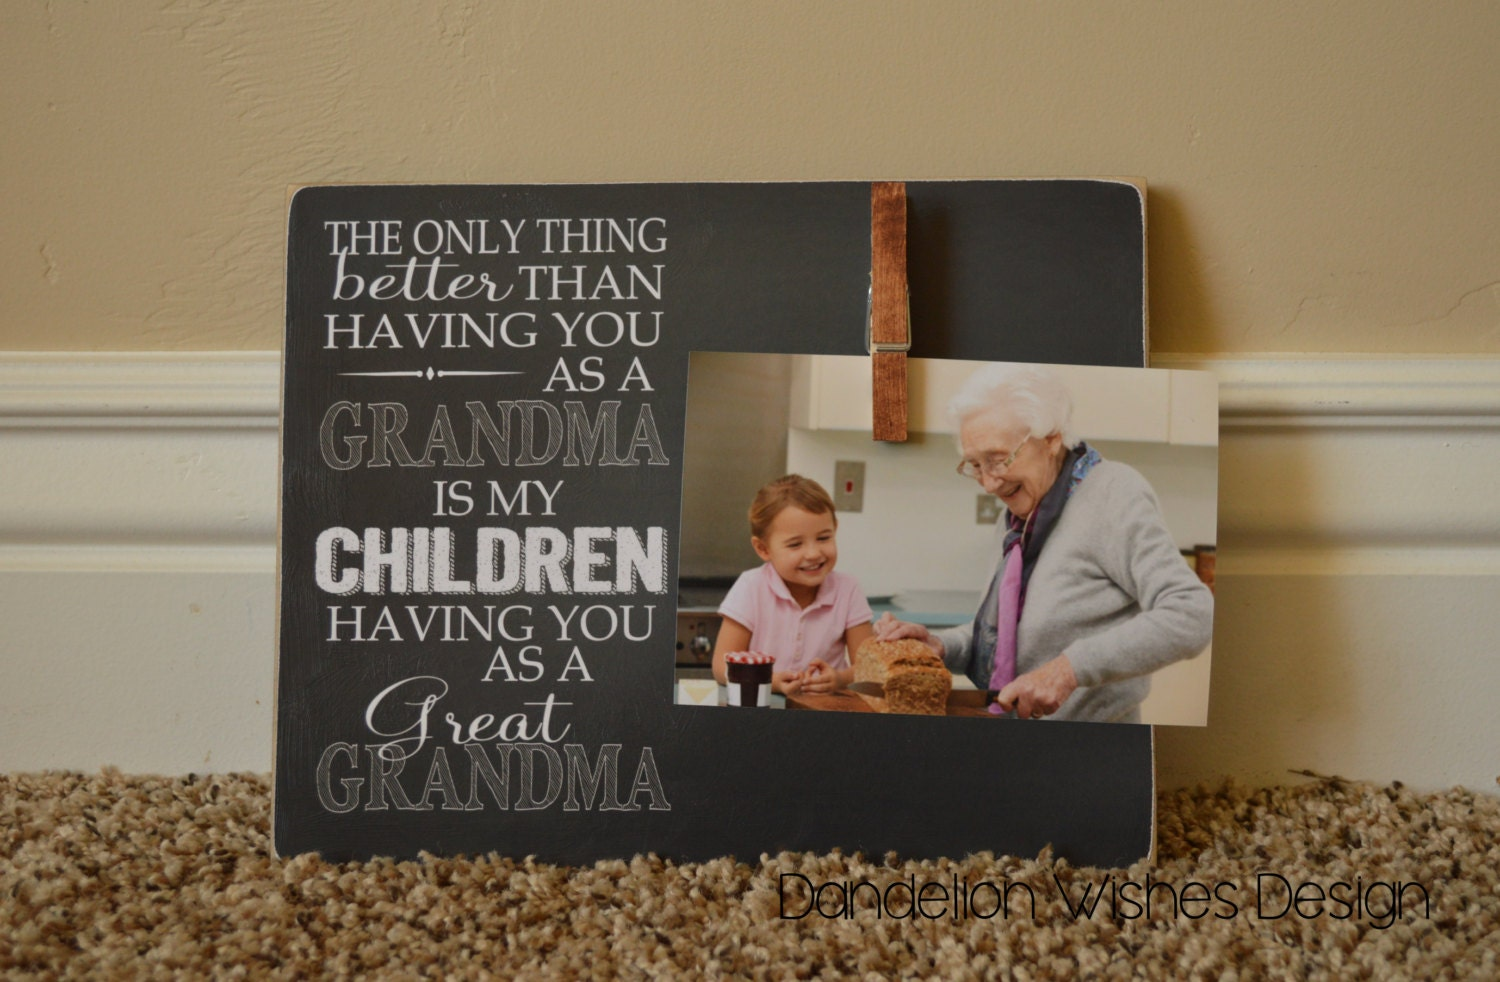 mothers day gift idea great grandma gift custom photo frame only thing better you as a grandma grandparents day gift for grandma